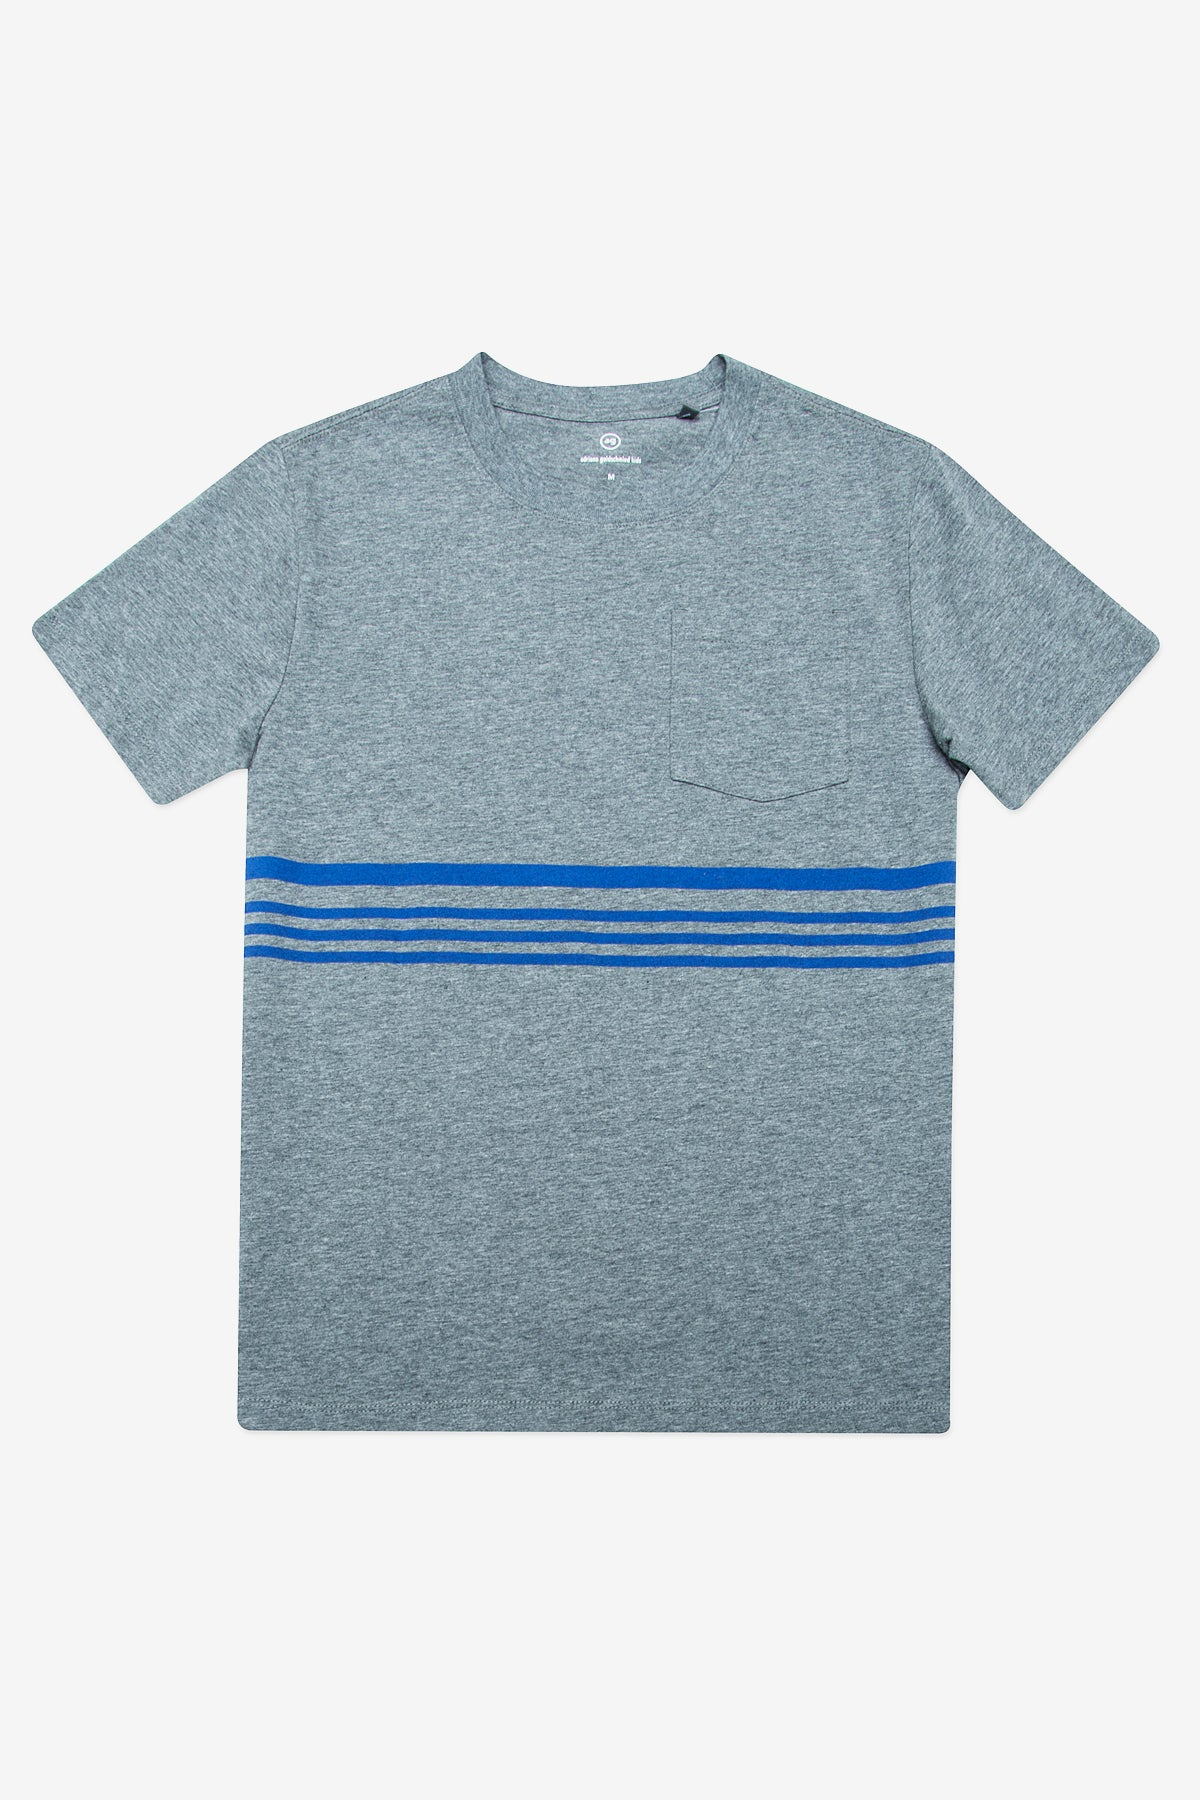 AG Jeans Kids Declan Boys T-Shirt